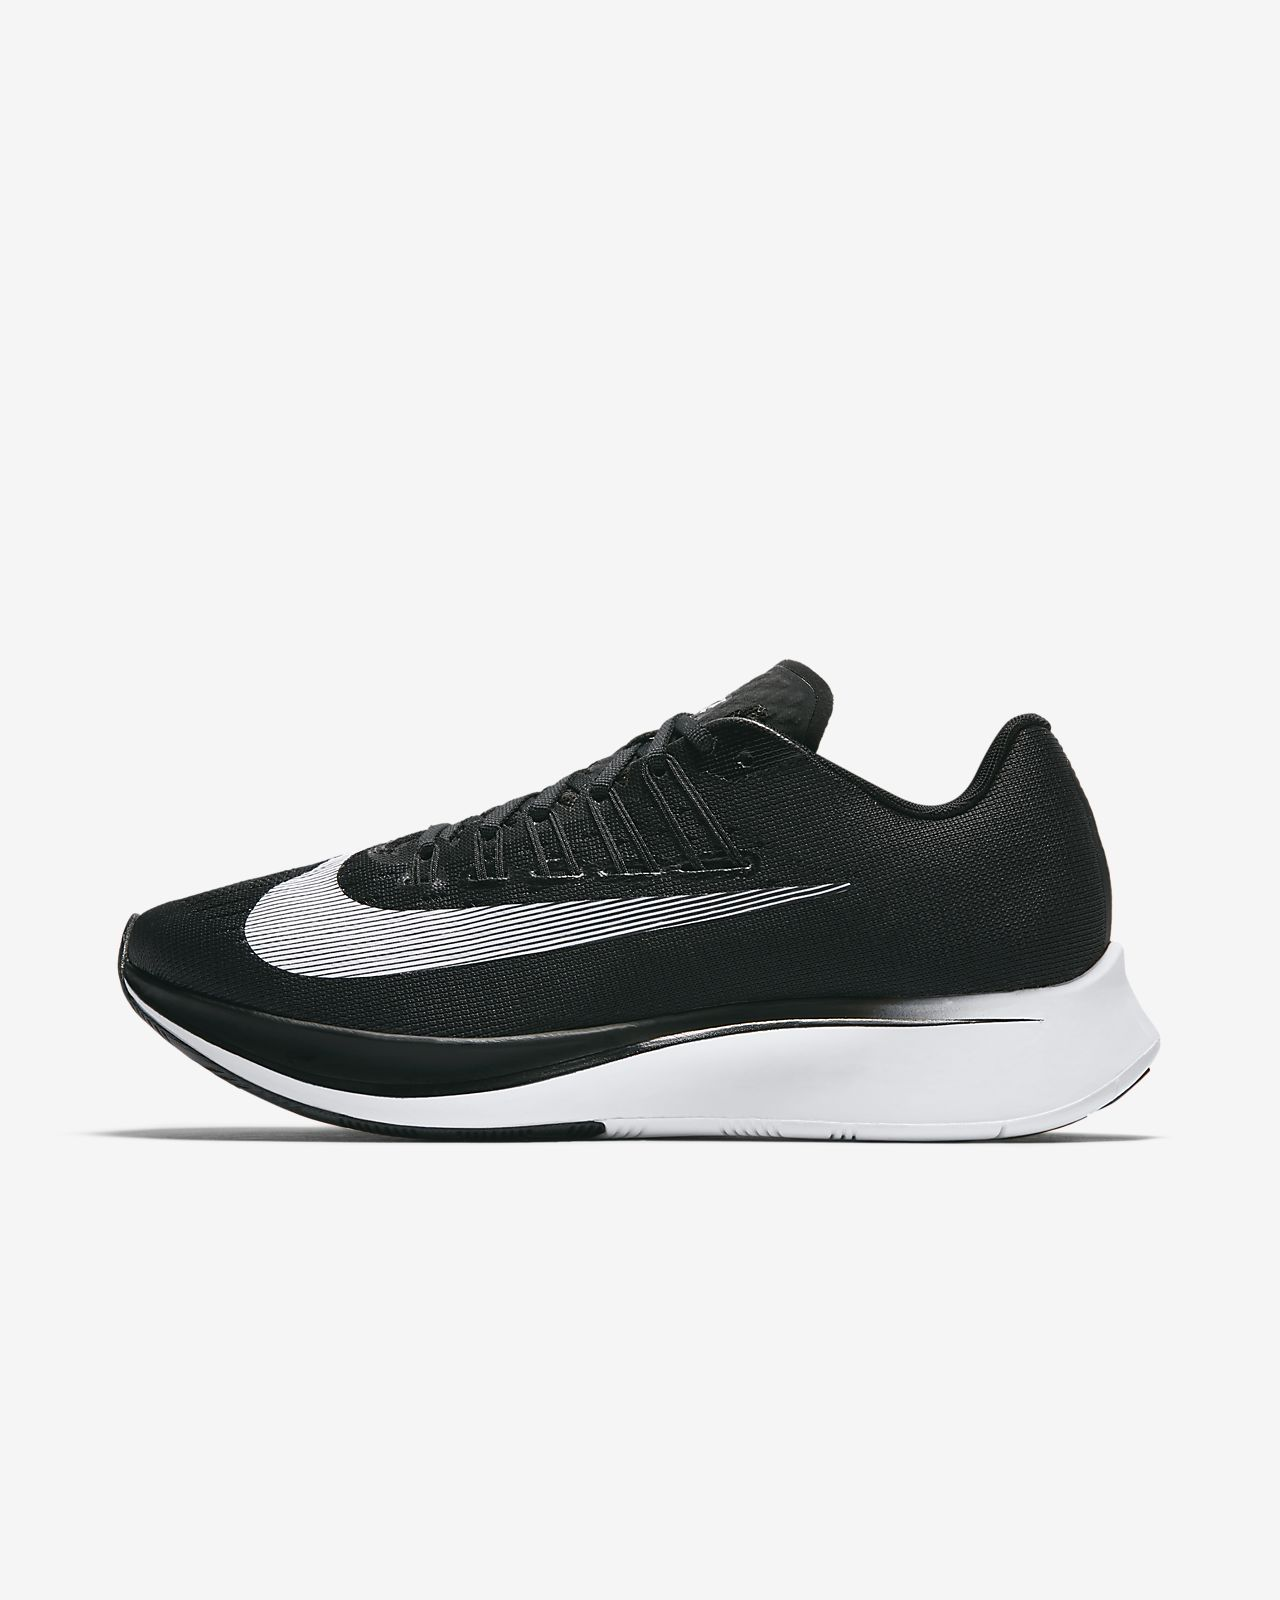 0e97c51282962 Nike Zoom Fly Women s Running Shoe. Nike.com